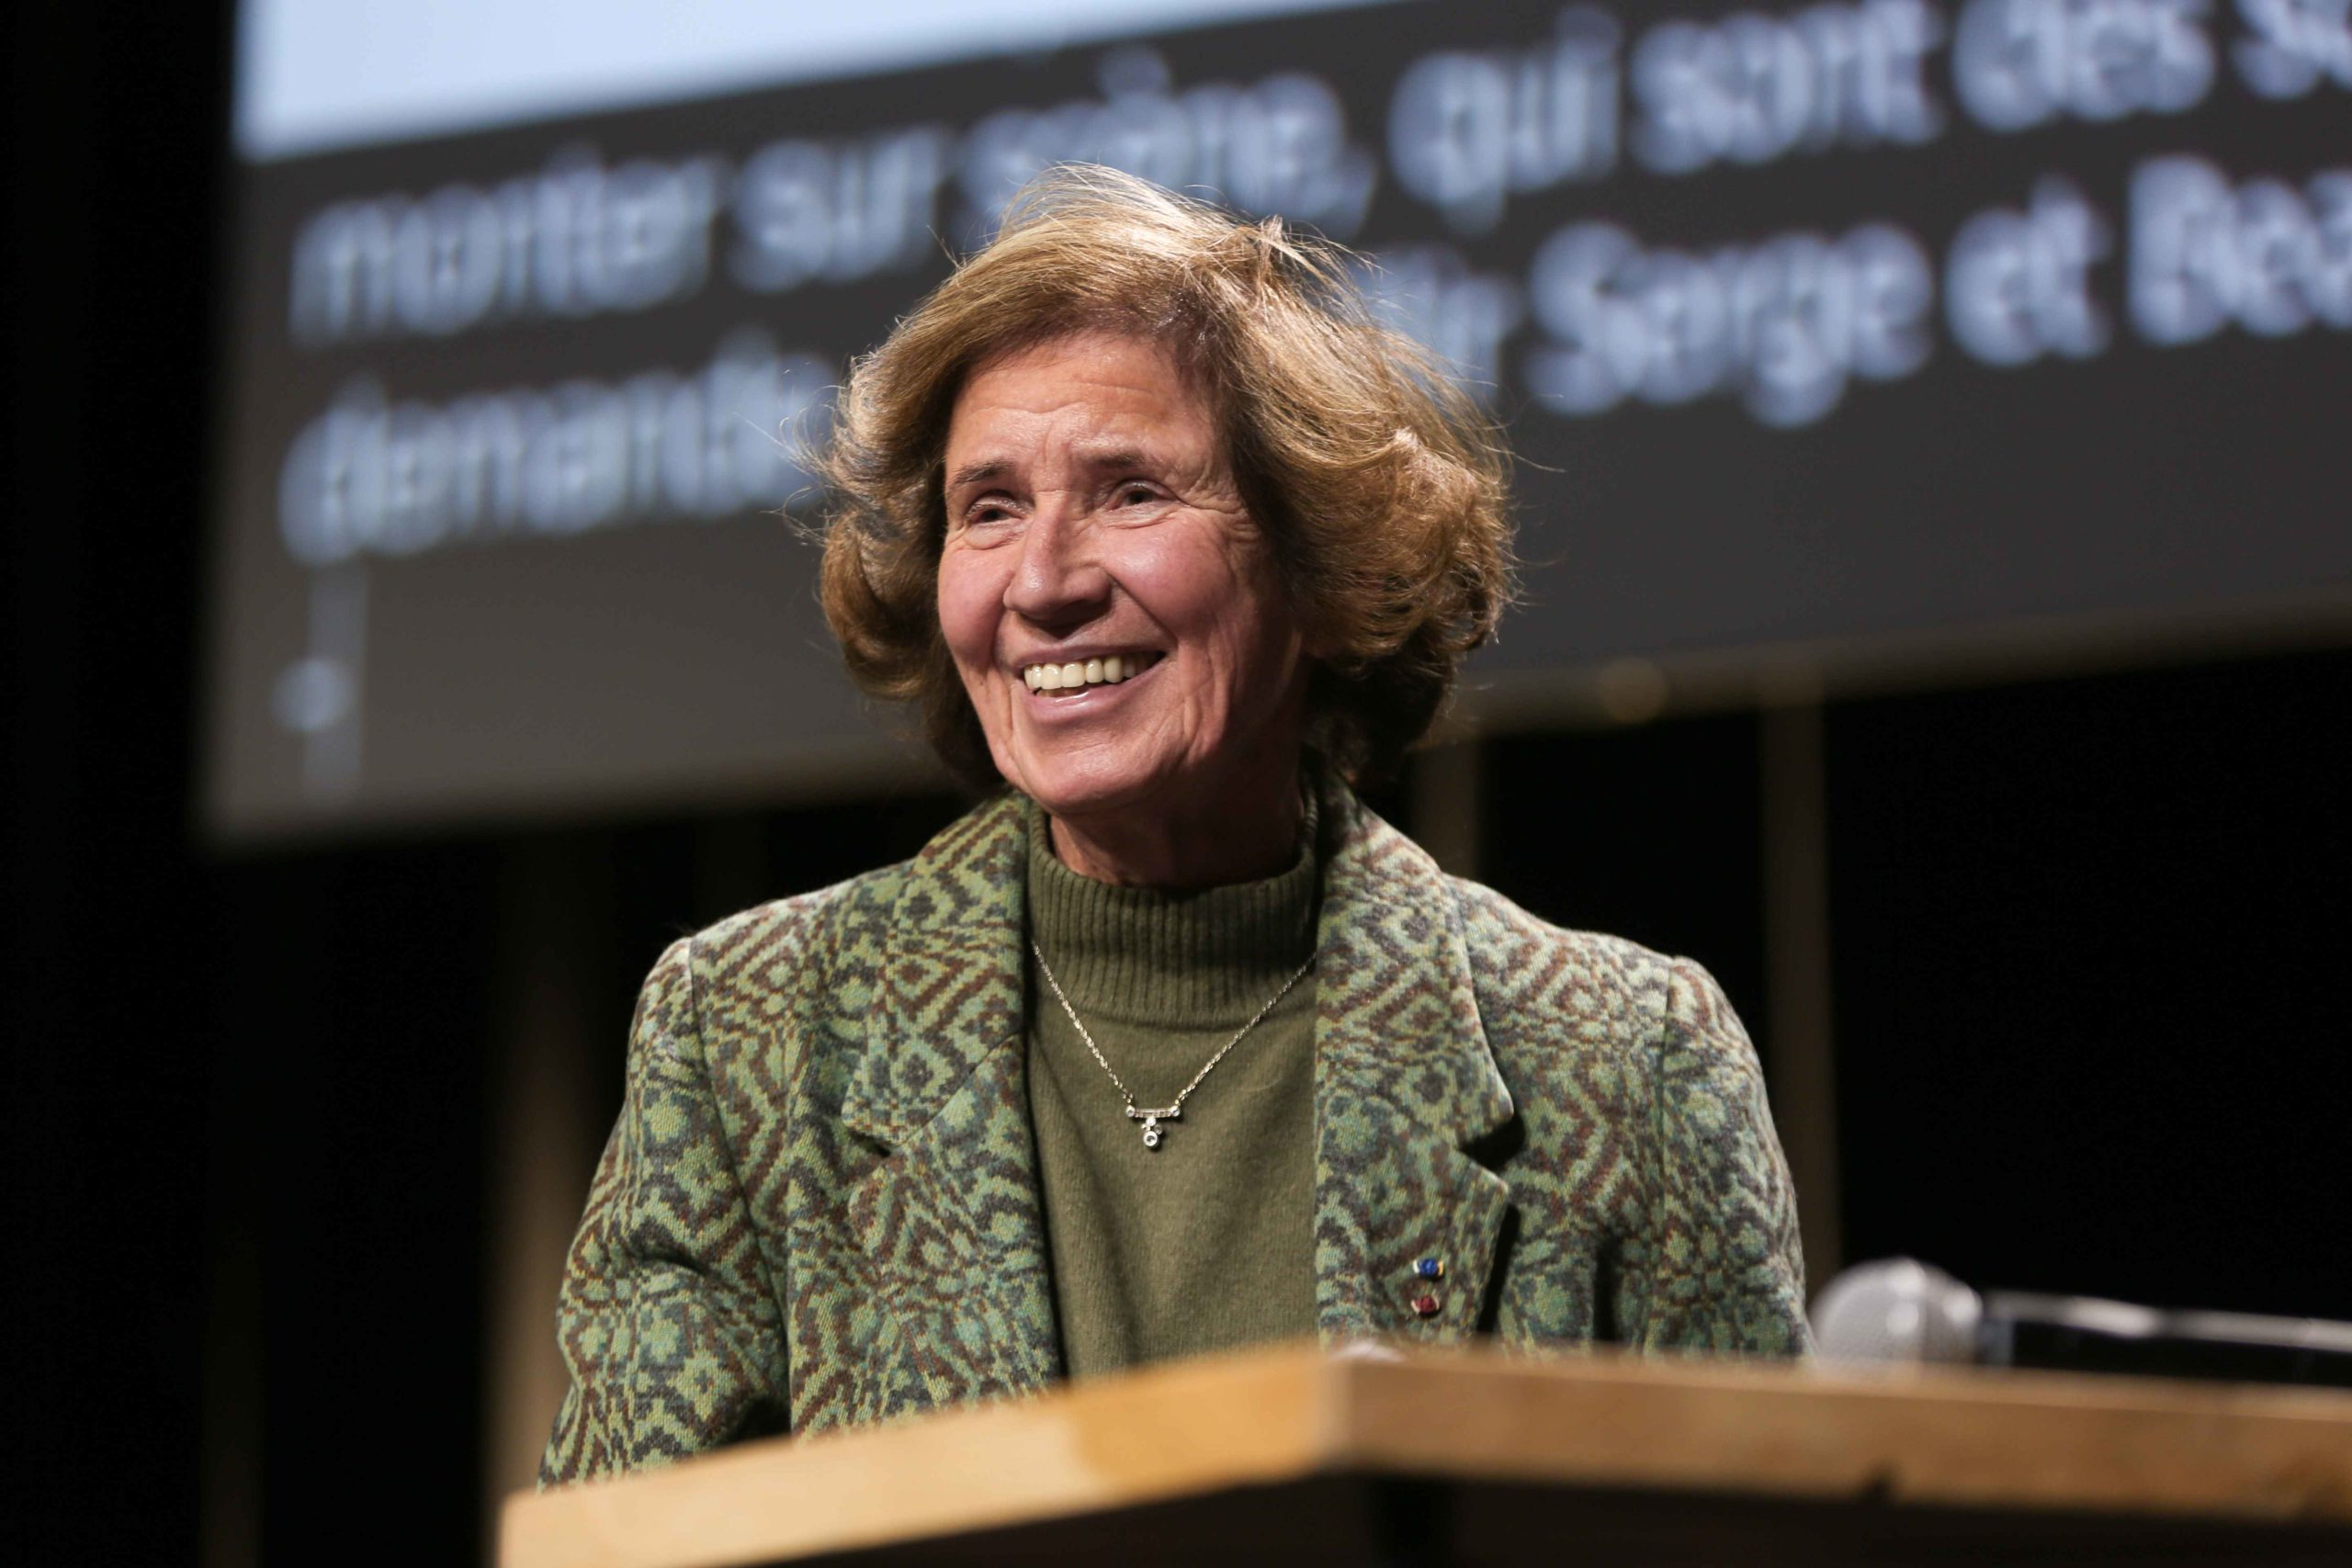 French nazi hunter Beate Klarsfeld takes part as Paris Mayor and candidate for re-election Anne Hidalgo supporter in in a campaign meeting at the Elysee Montmartre venue in Paris, on February 26, 2020, ahead of March 2020 mayoral elections in France